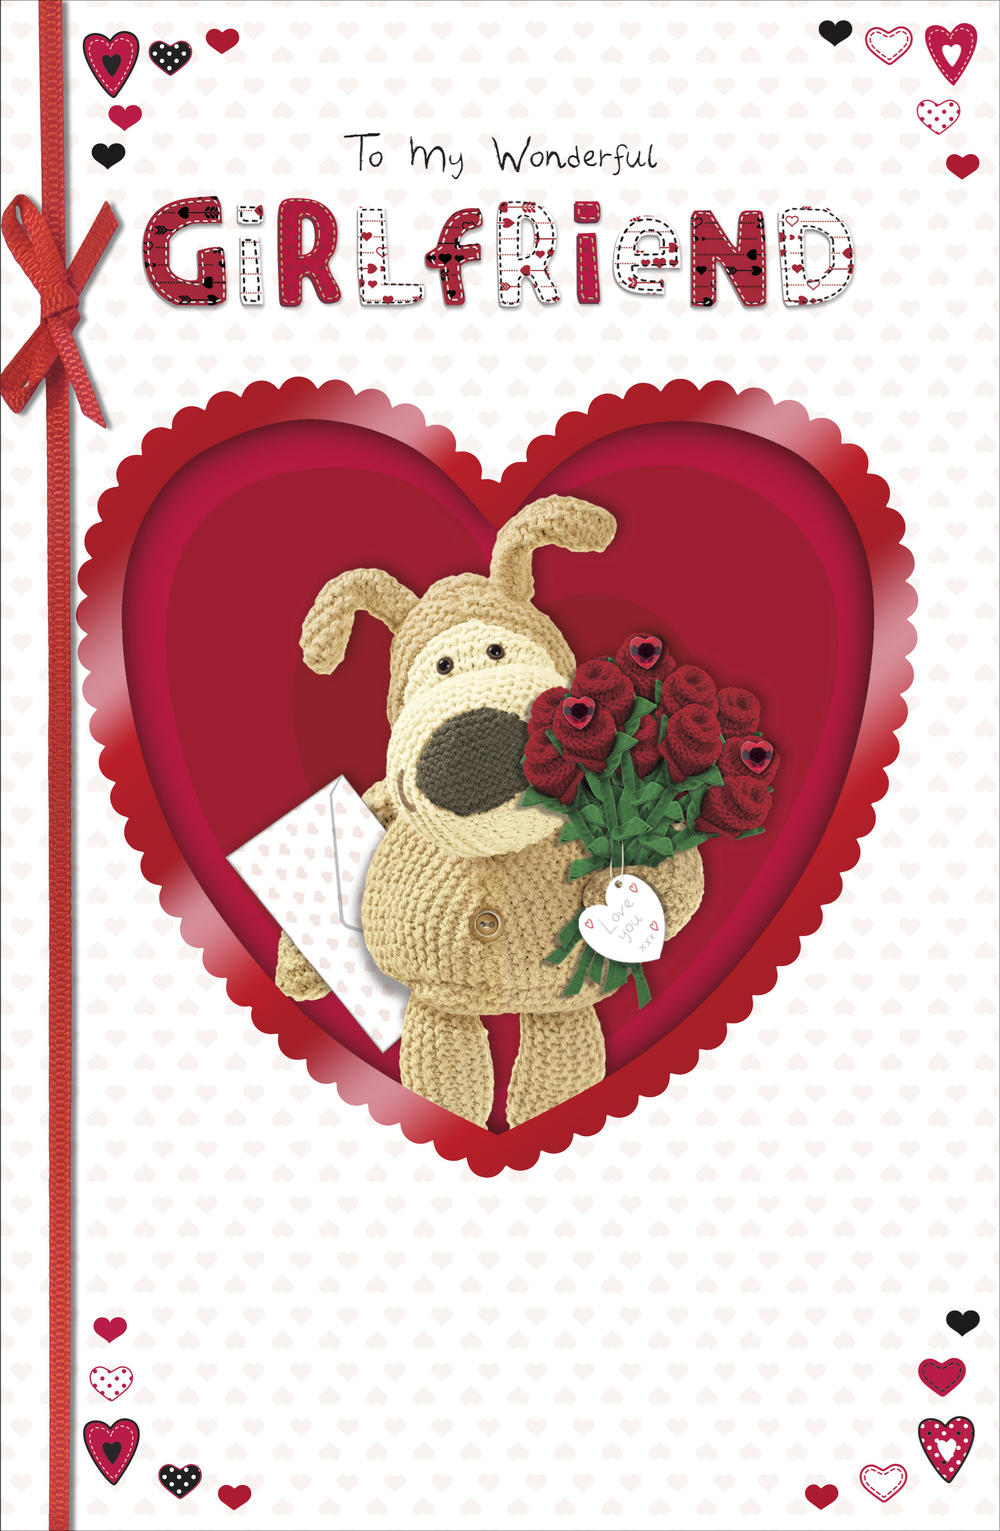 Boofle Wonderful Girlfriend Valentine's Day Card